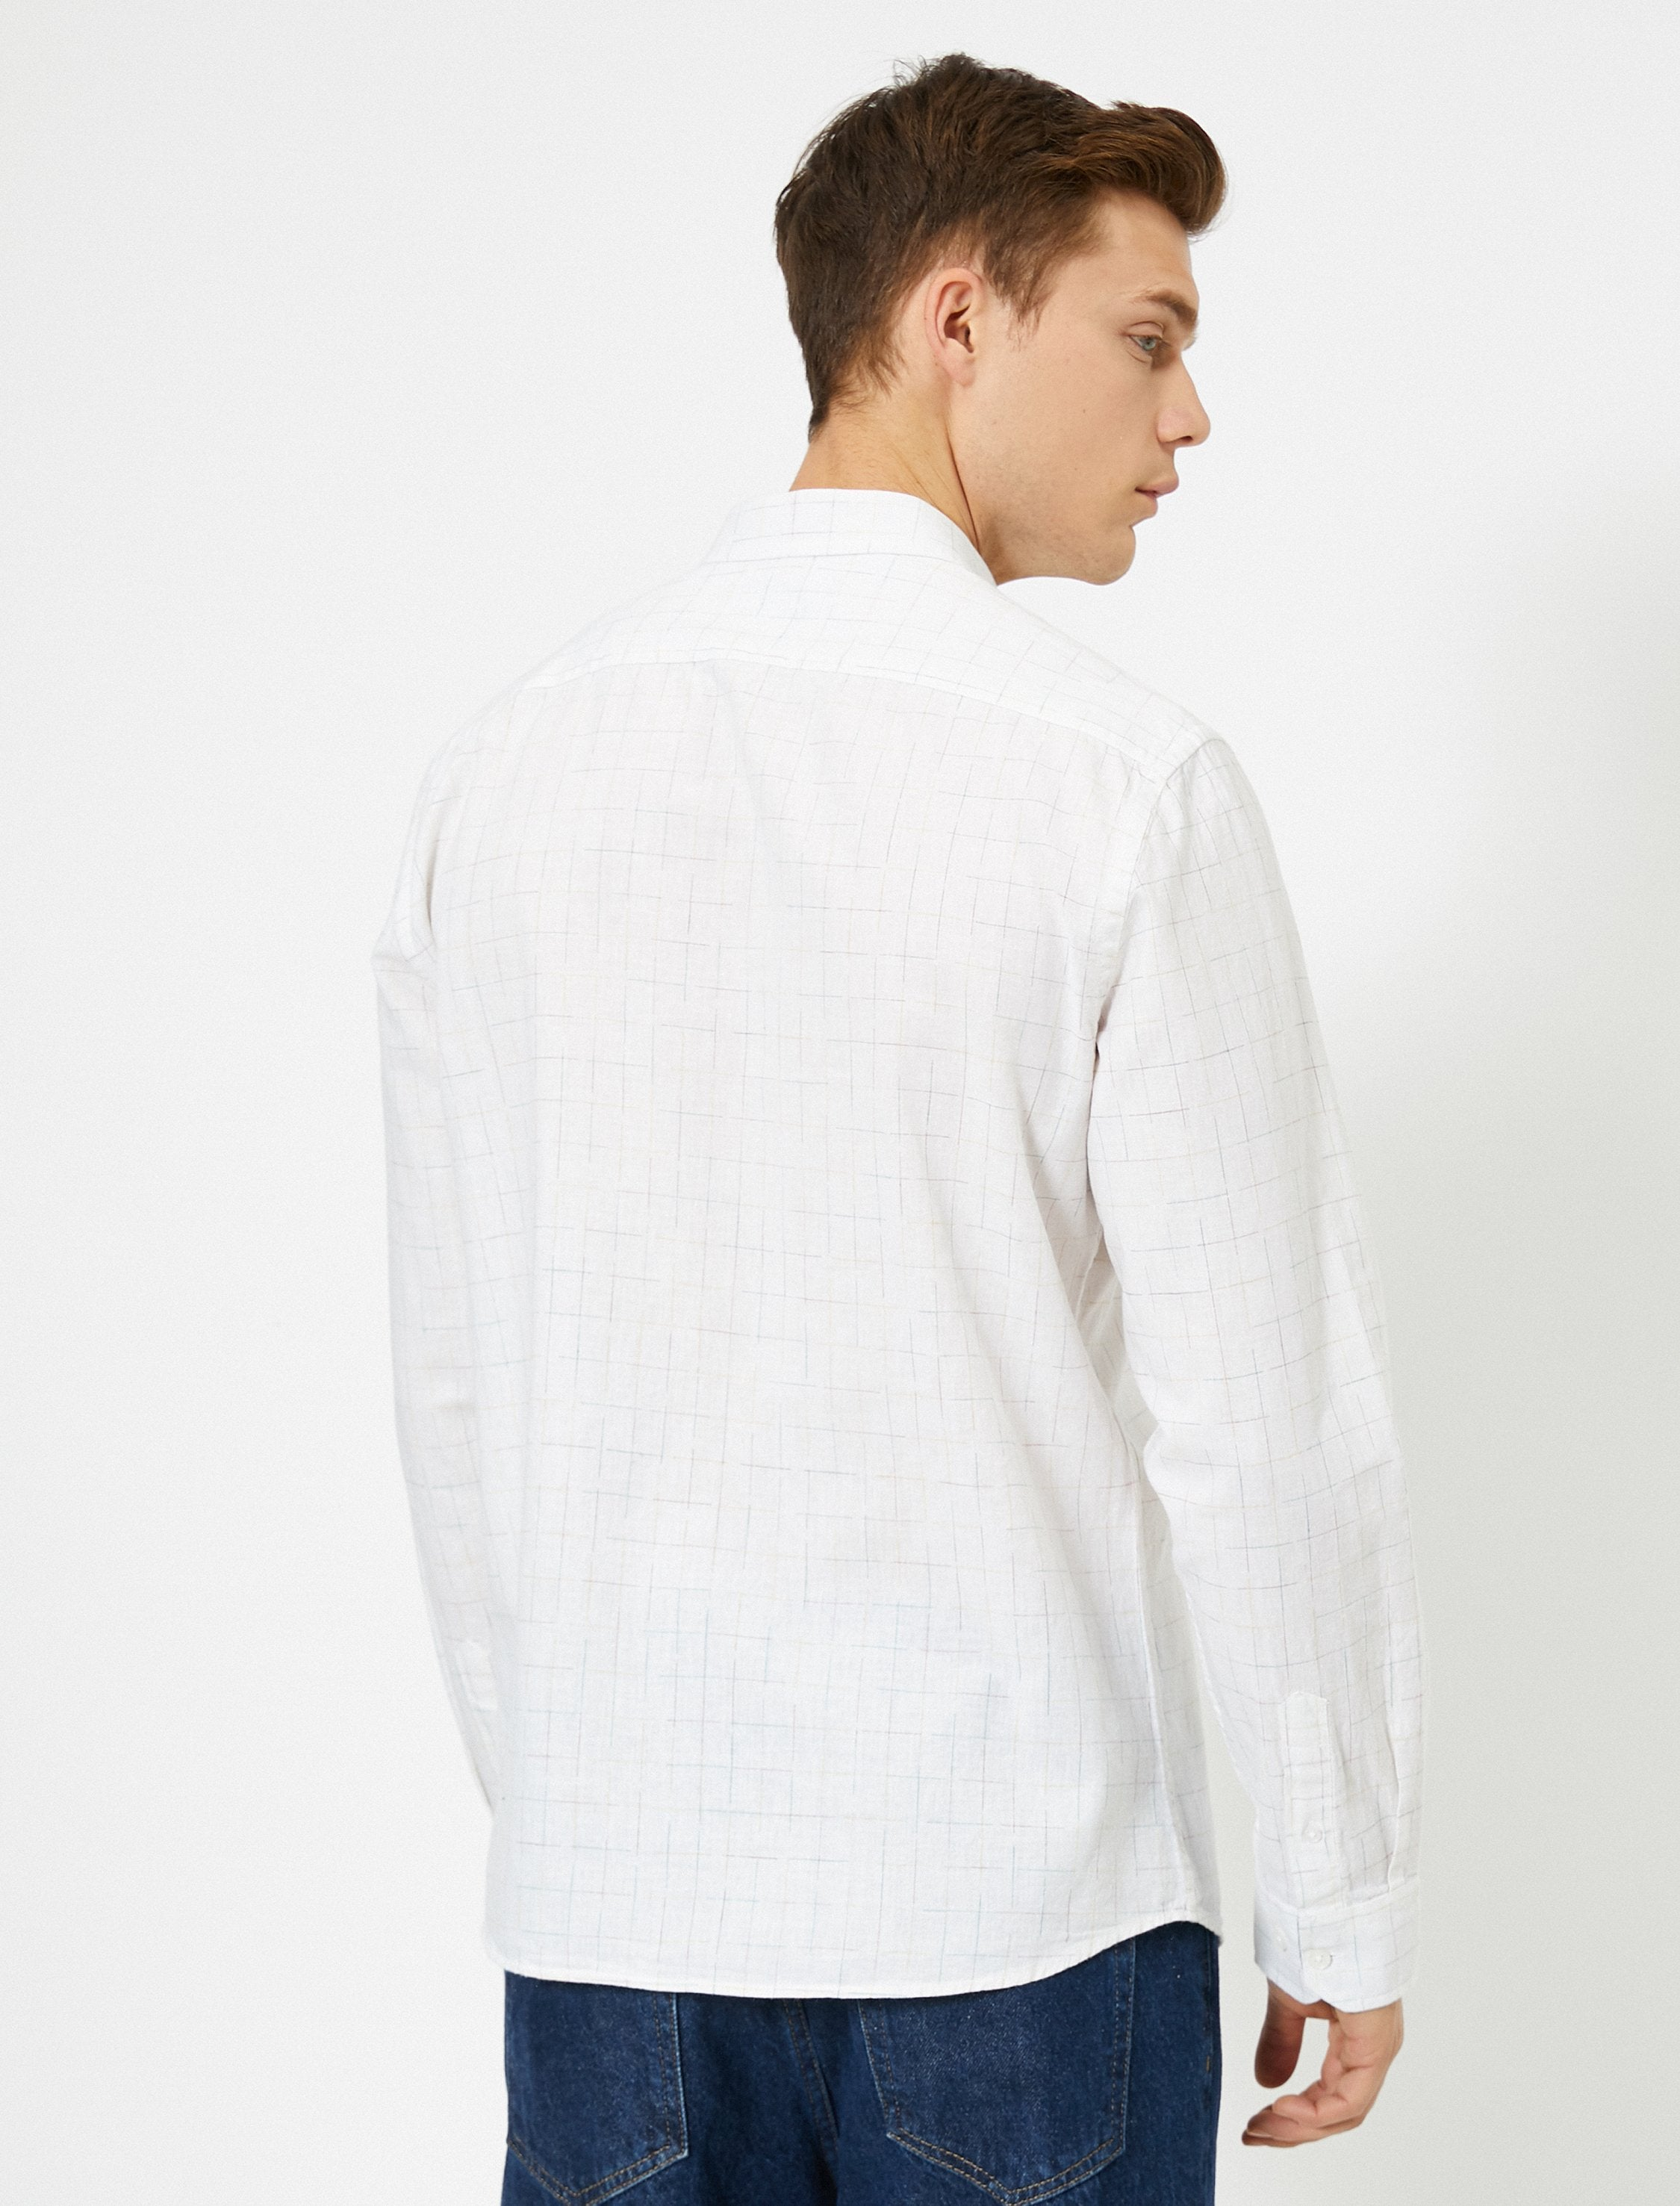 Natural Look Shirt in White